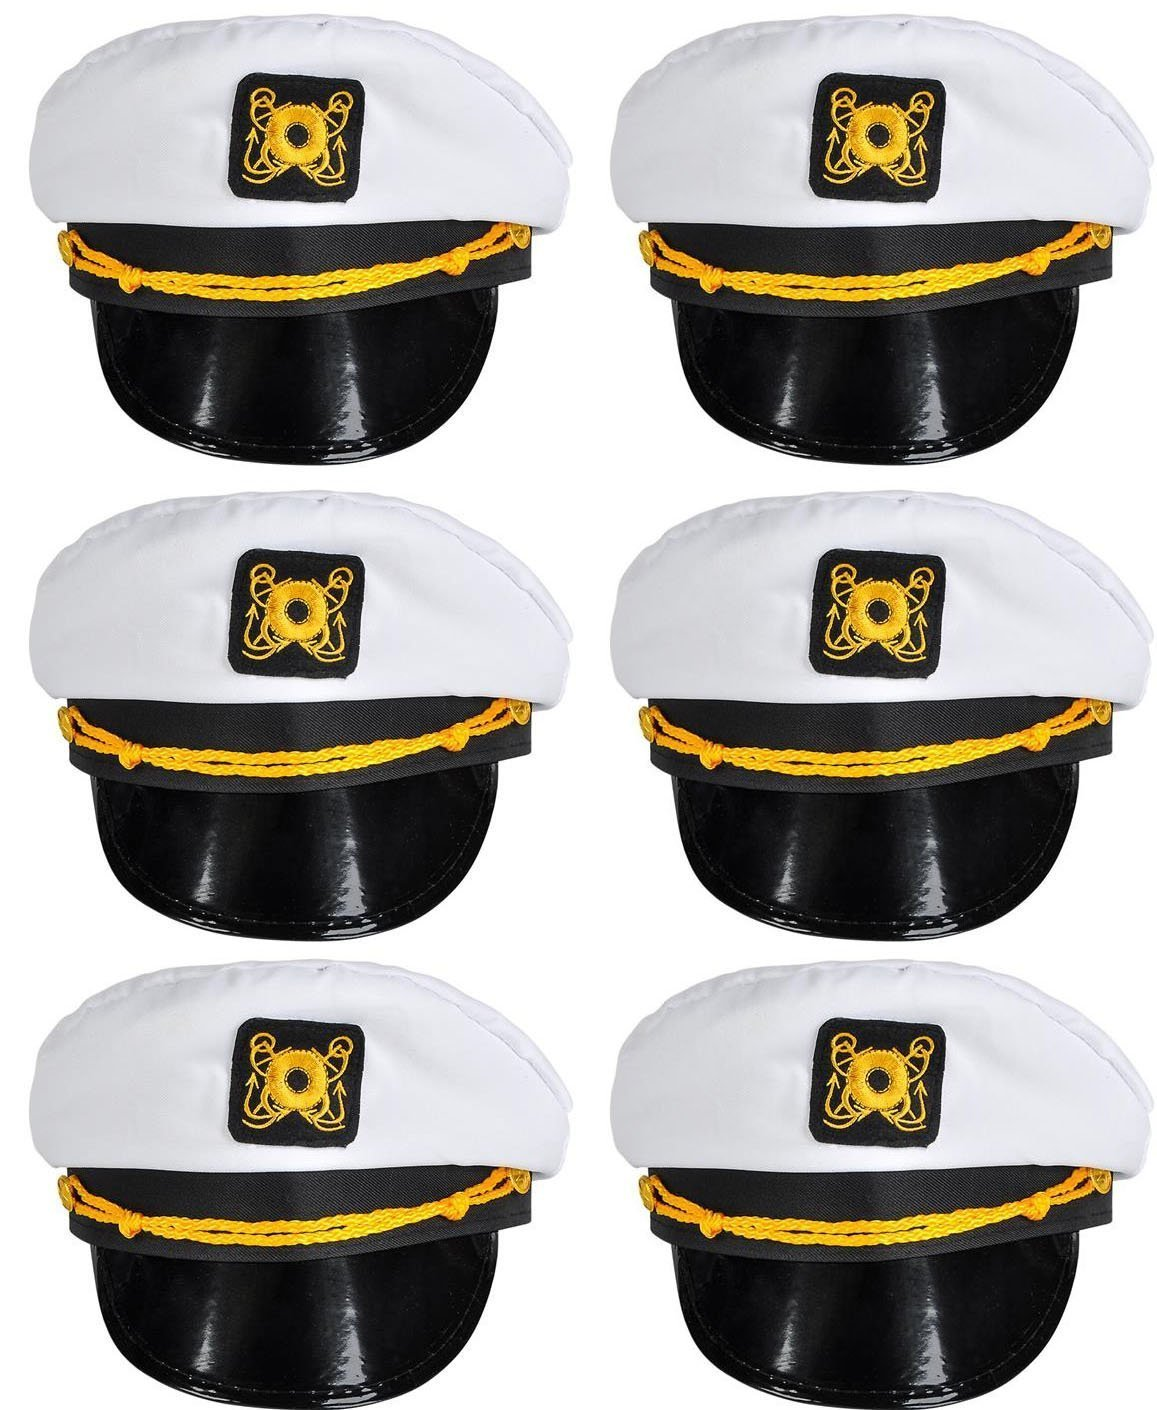 Bottles N Bags White Nautical Captain Sailing Hats (6 Pack) Great Cruise Accessory by